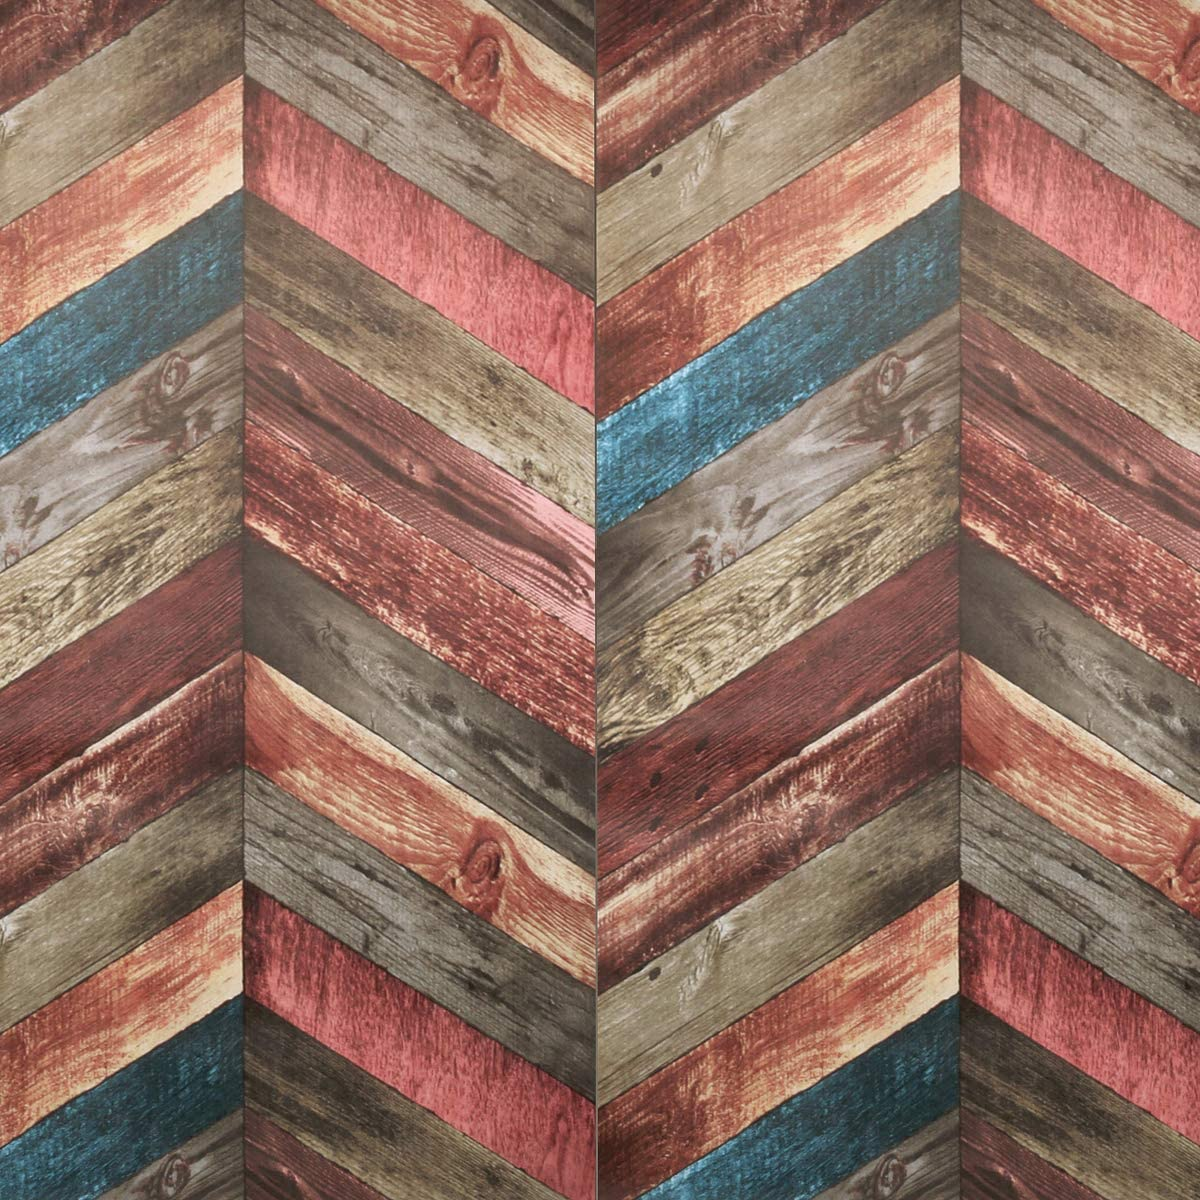 "Chevron Wood Wallpaper - Wood Peel and Stick Wallpaper - Contact Paper or Wall paper - Removable Wallpaper - Vintage Dark Wood Panel Wallpaper - 1.48 ft x 9.83 ft 14.55 sq ft (17.71"" Wide x 118"" Long)"